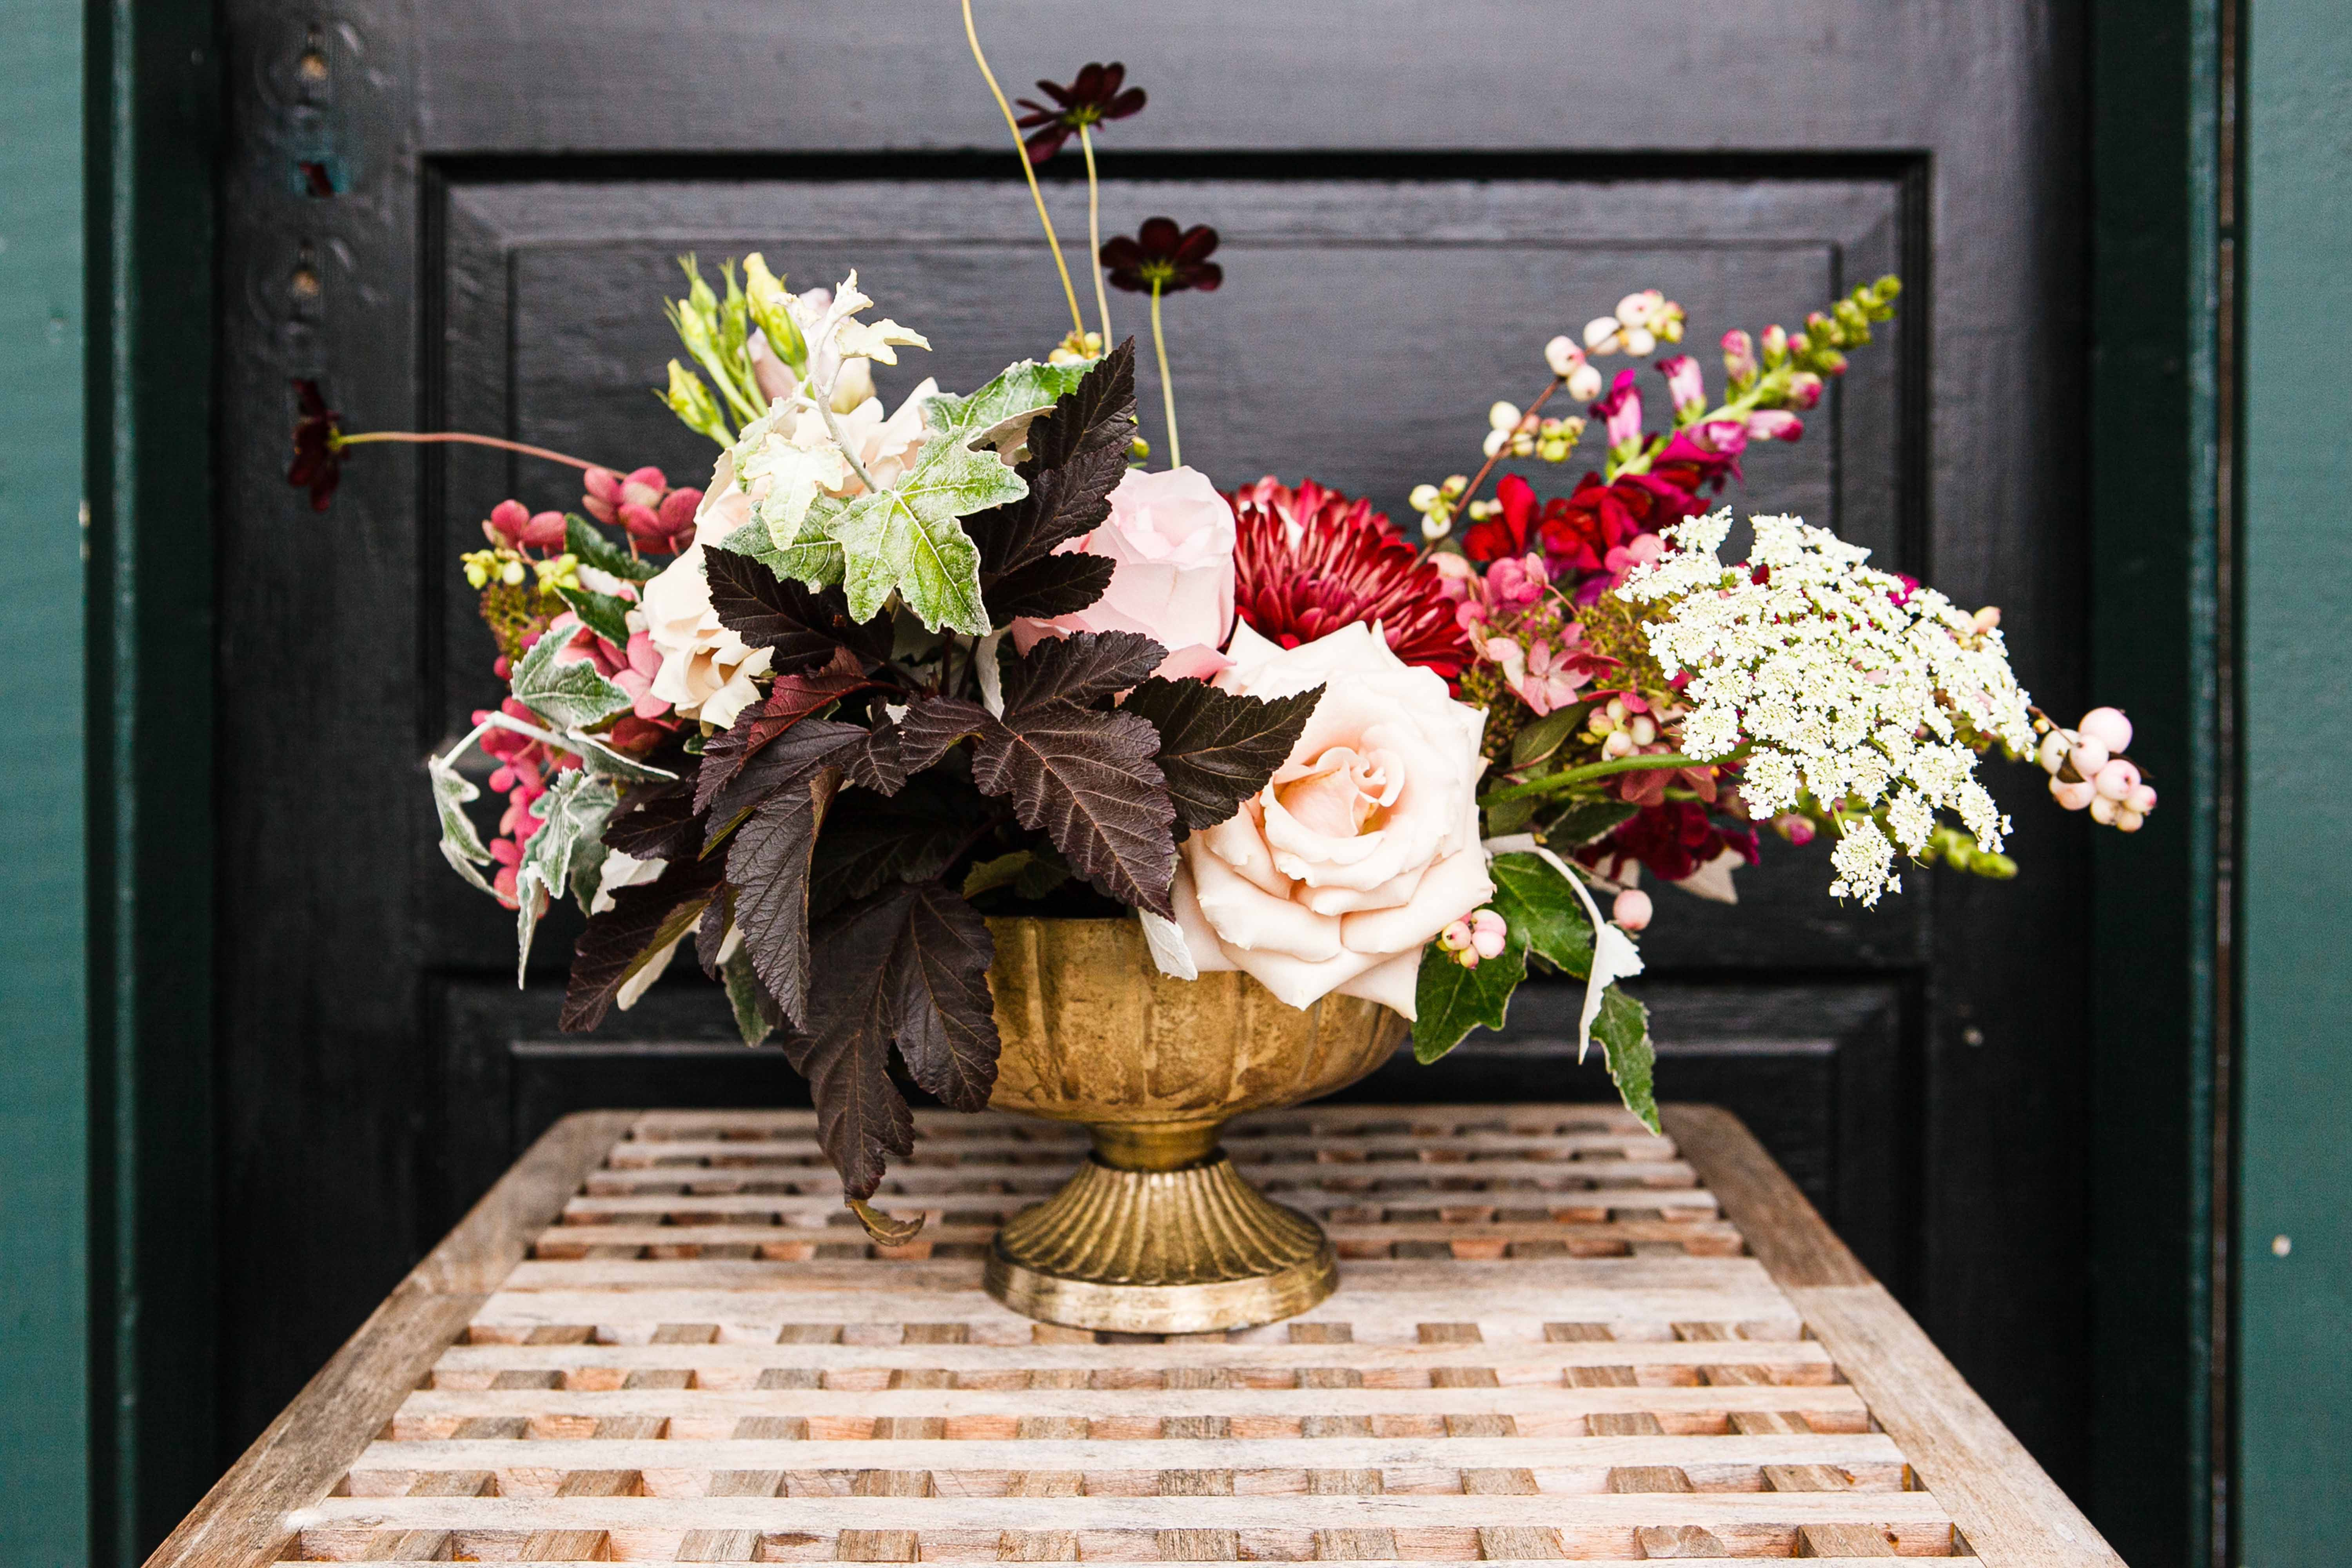 A compote arrangement with fall flowers